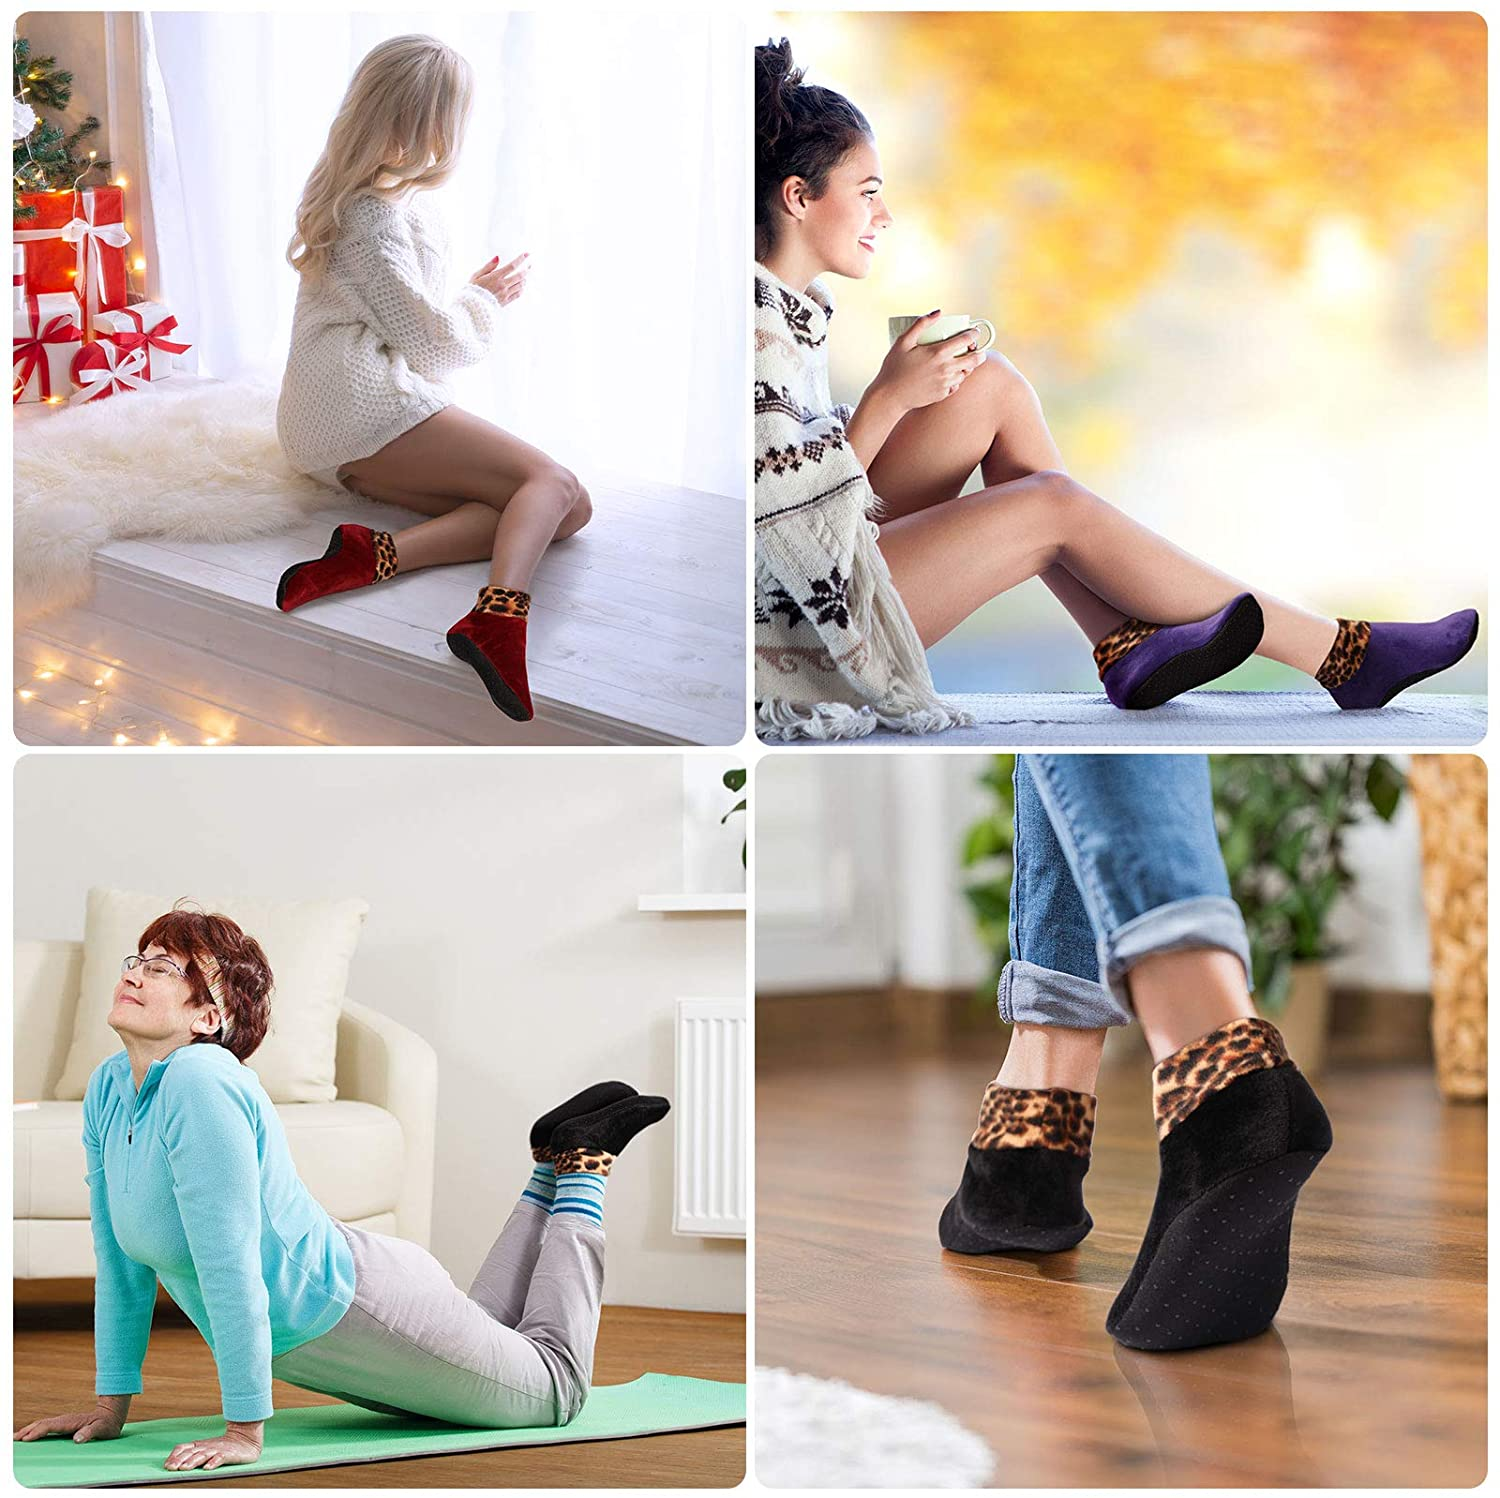 ✨Early Christmas Hot Sale ✨Indoor Non-slip Thermal Socks-One Size Fits All